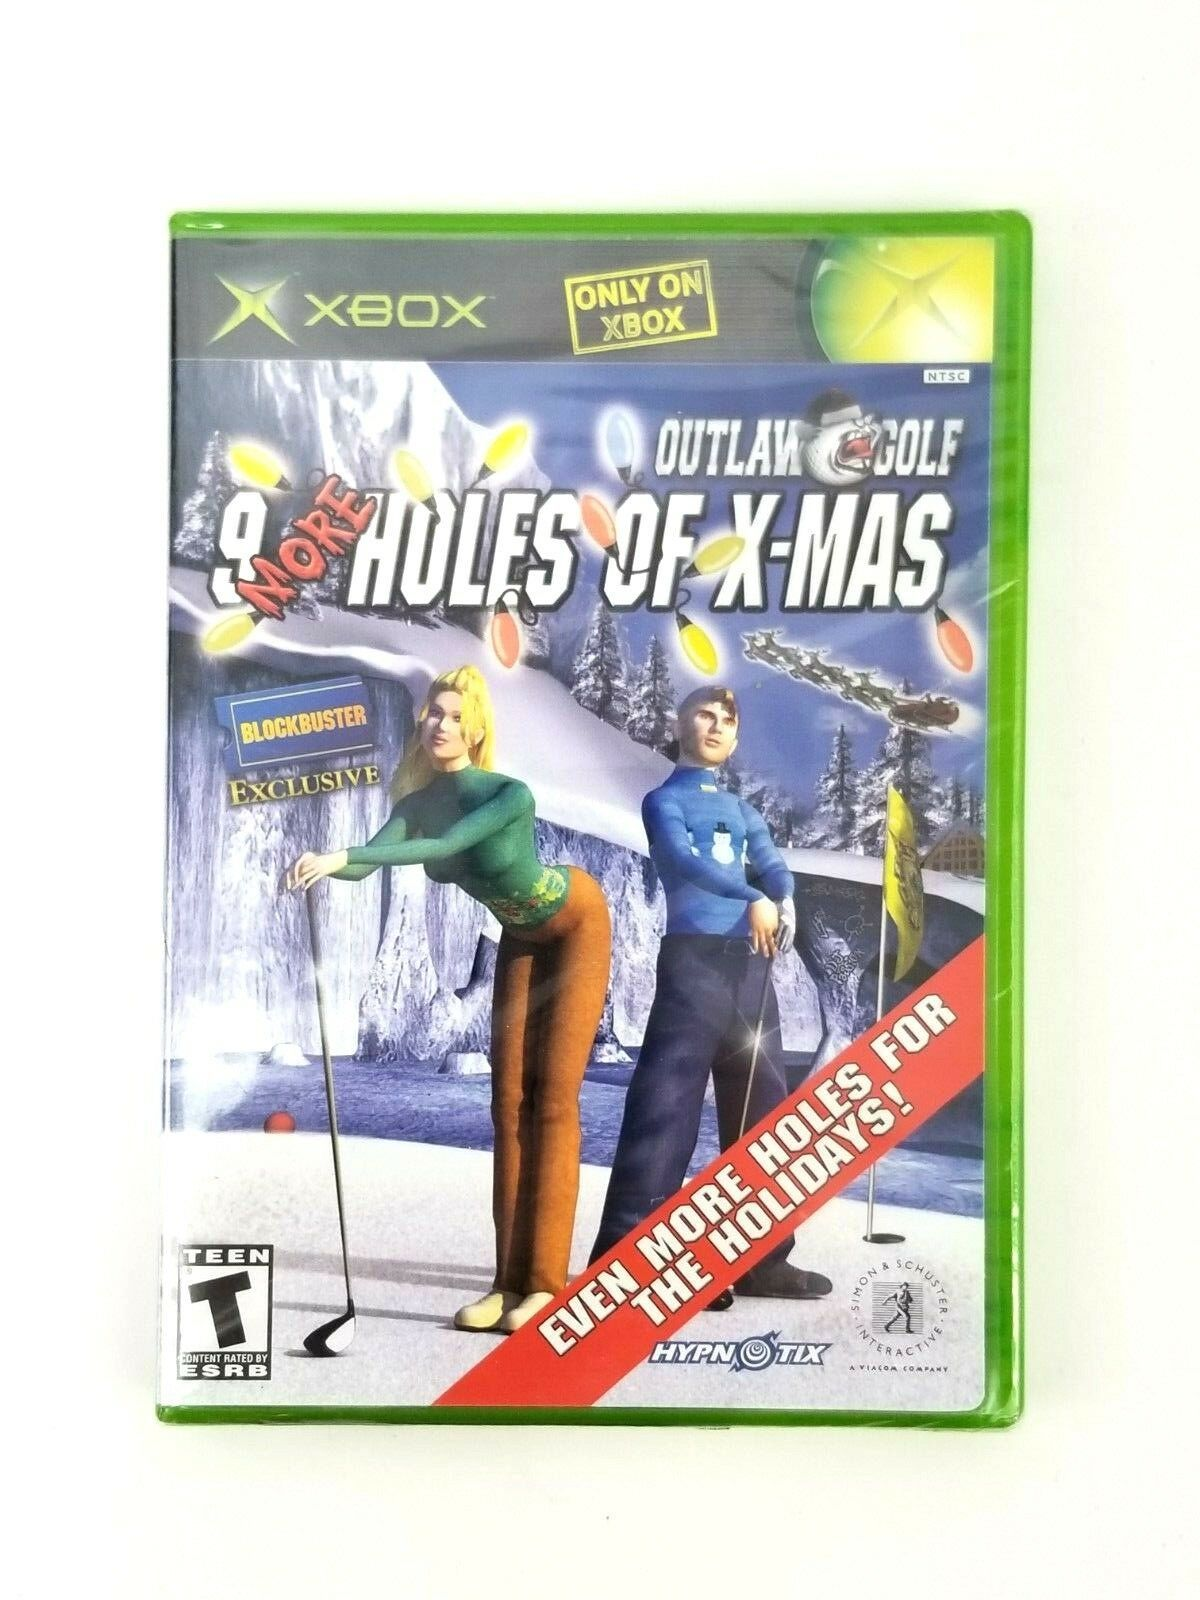 Xbox - Outlaw Golf: 9 More Holes of X-mas Video Game - Blockbuster Exclusive New